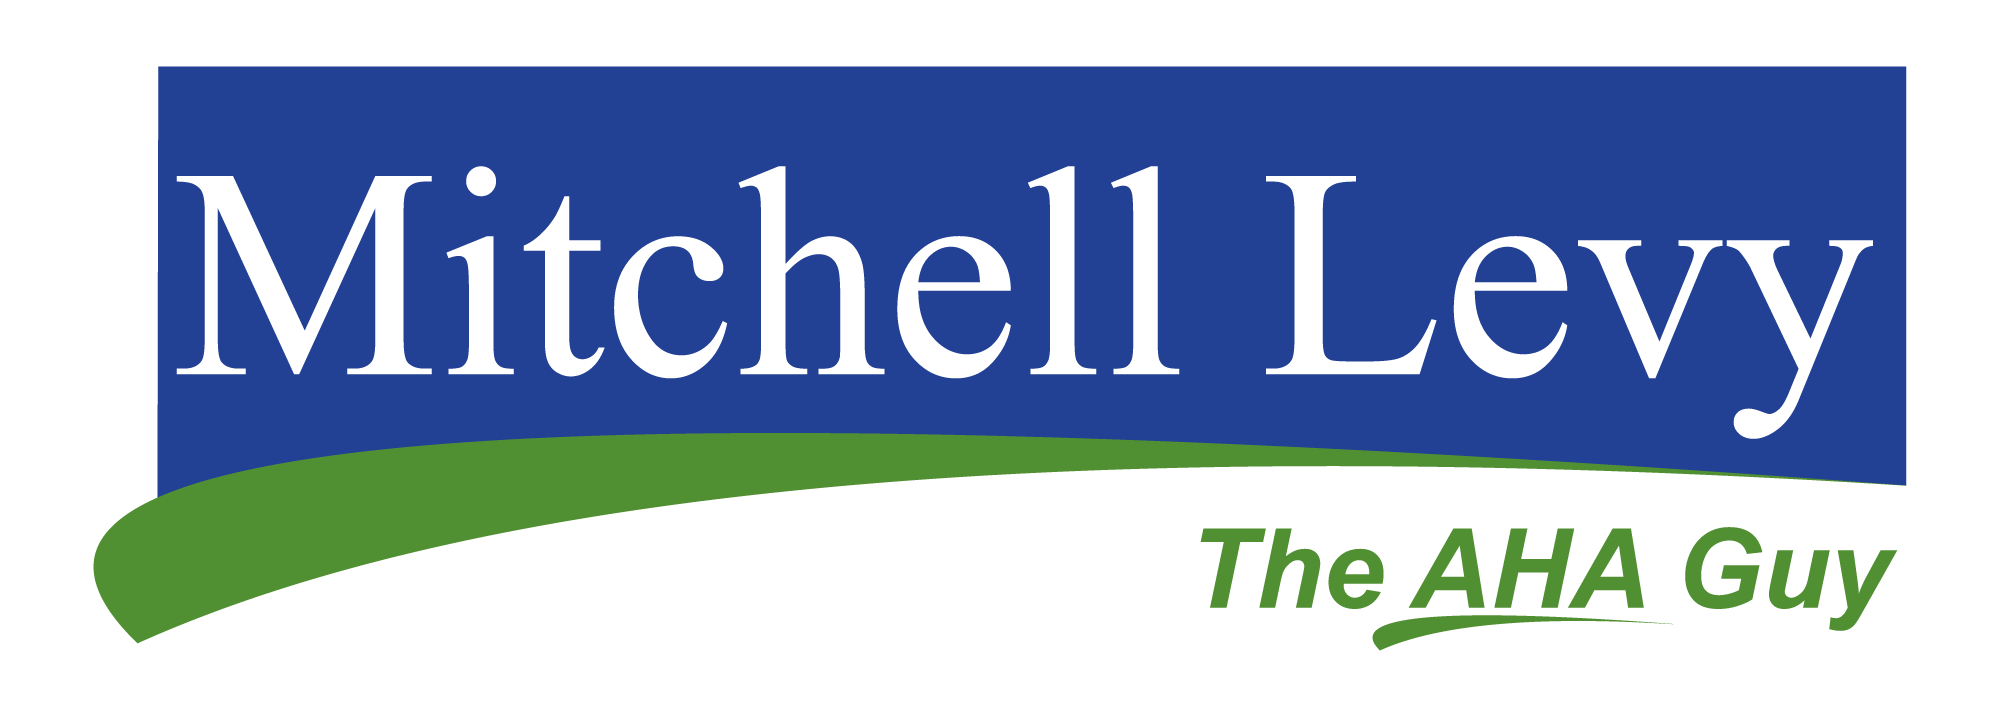 Mitchell Levy: Turning Experts into Thought Leaders